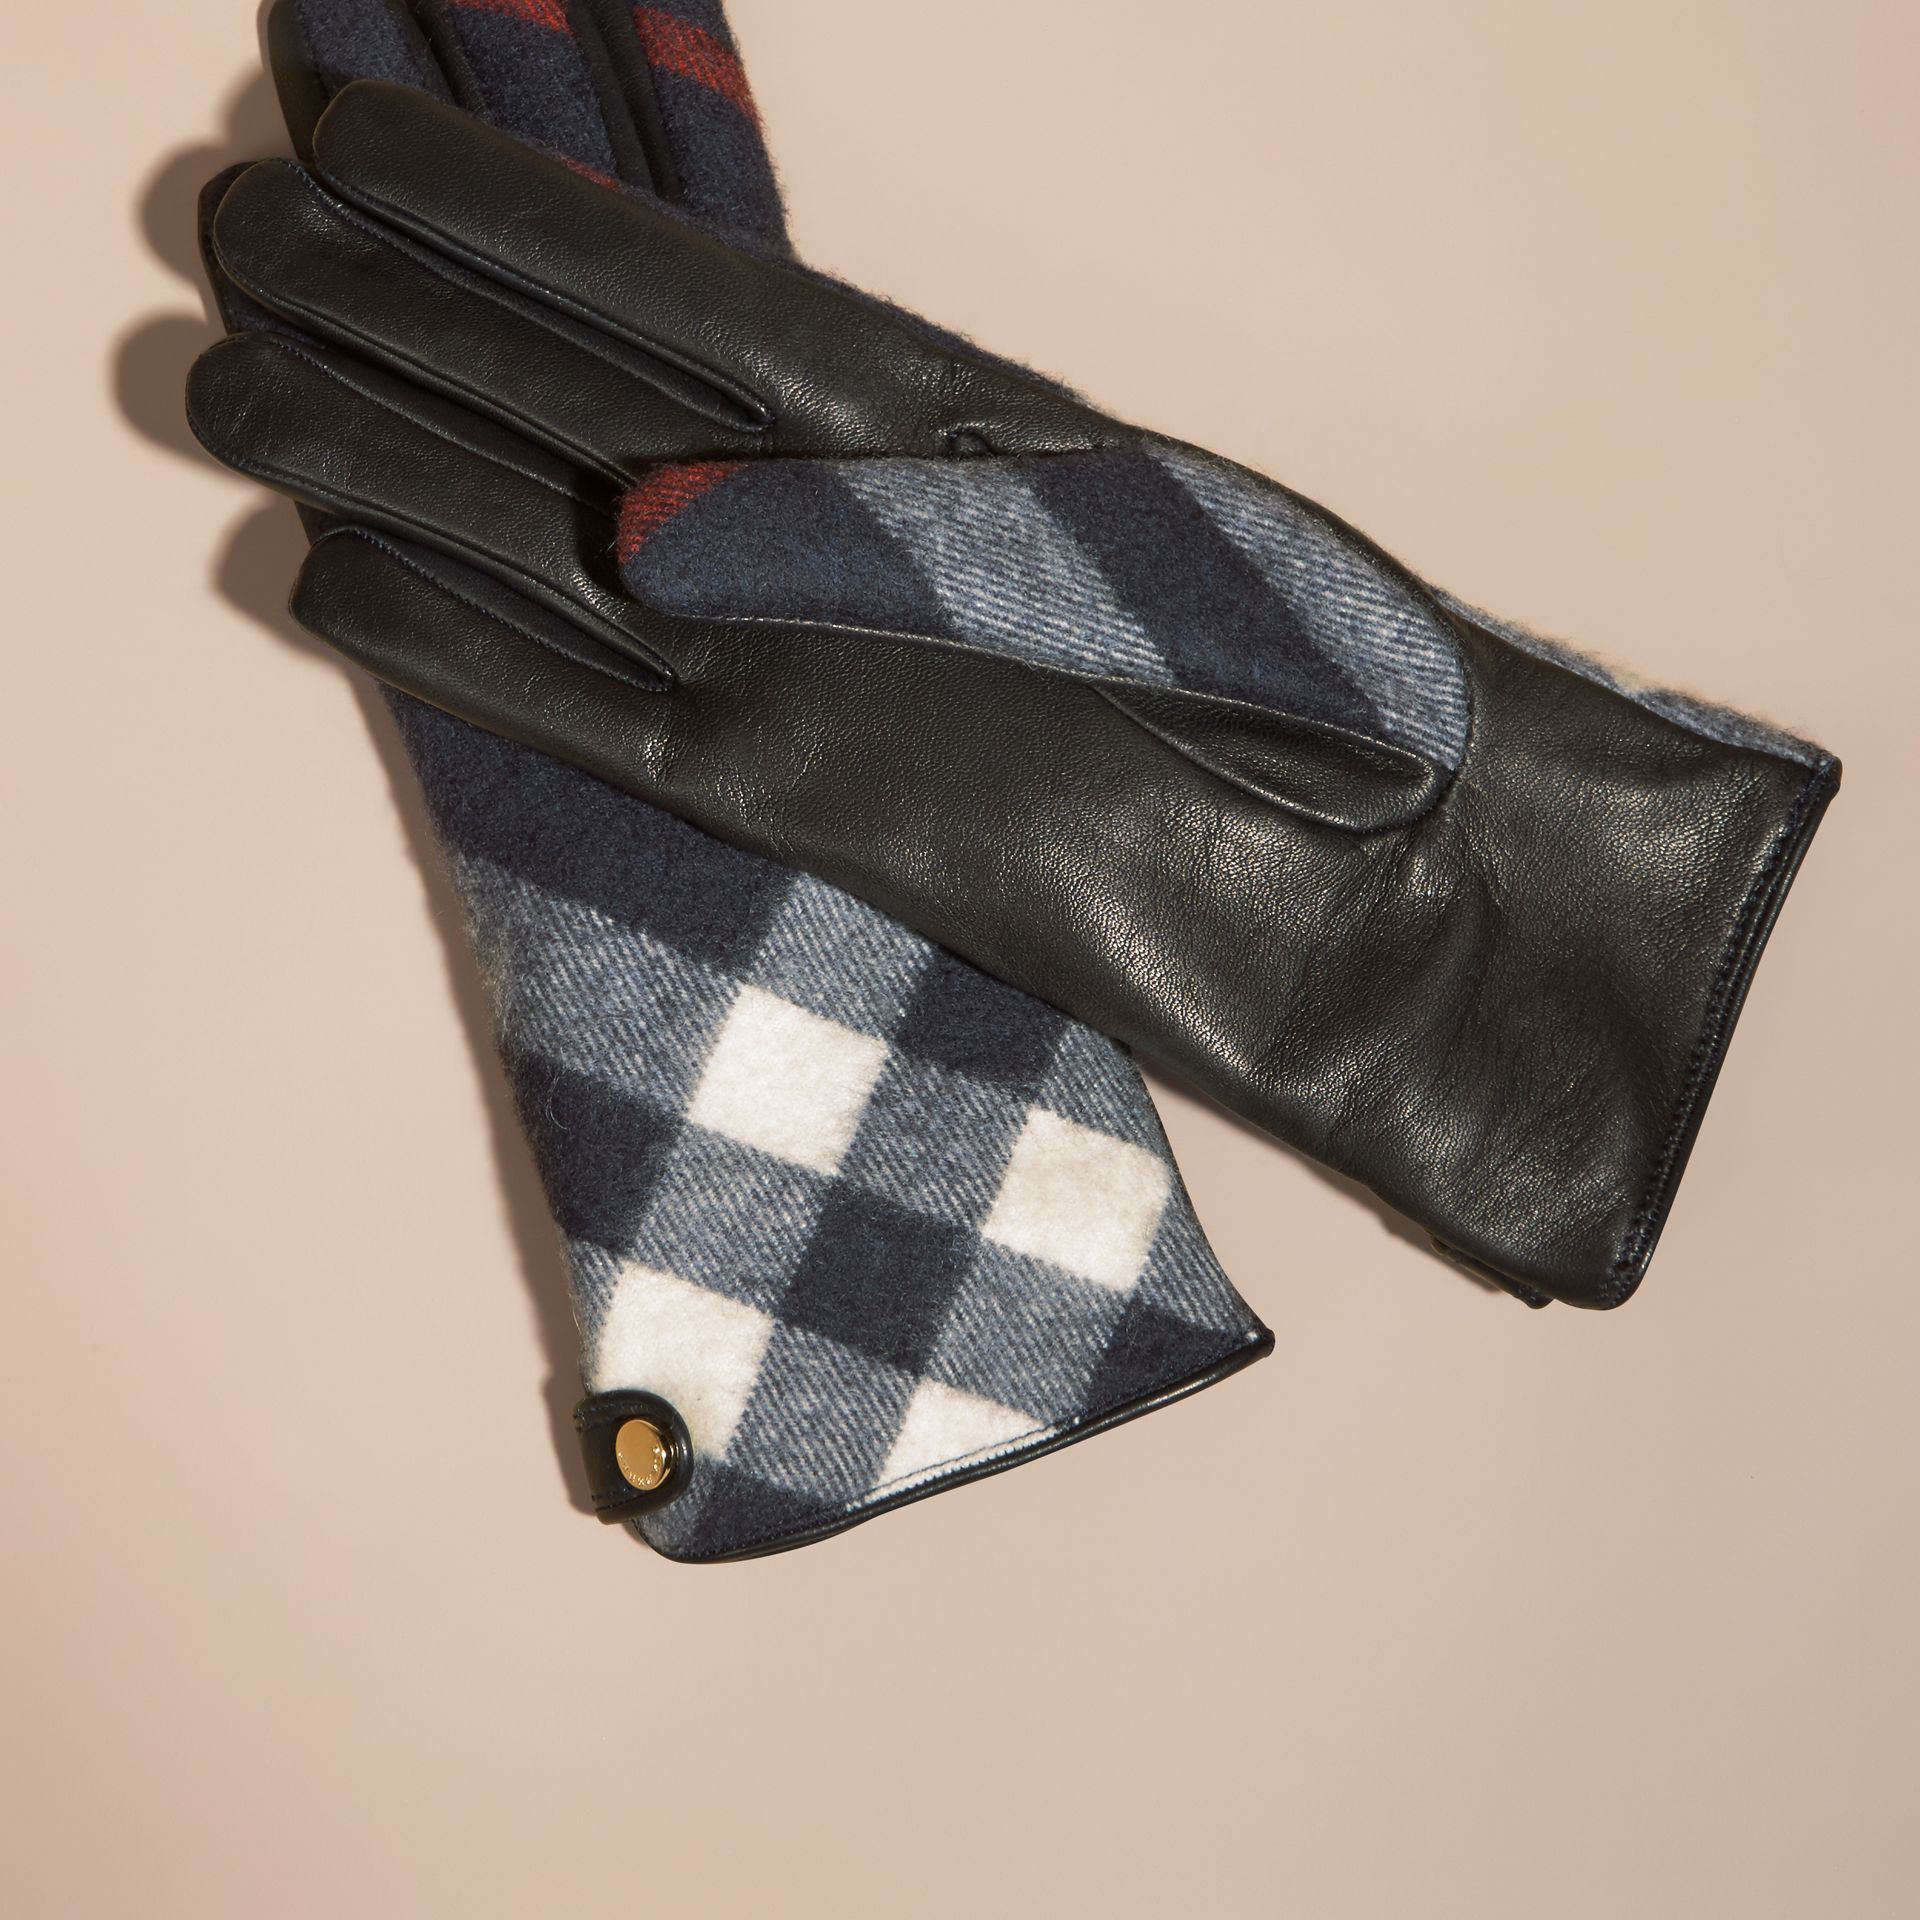 Leather and Check Cashmere Gloves in Navy - Women | Burberry - gallery image 3